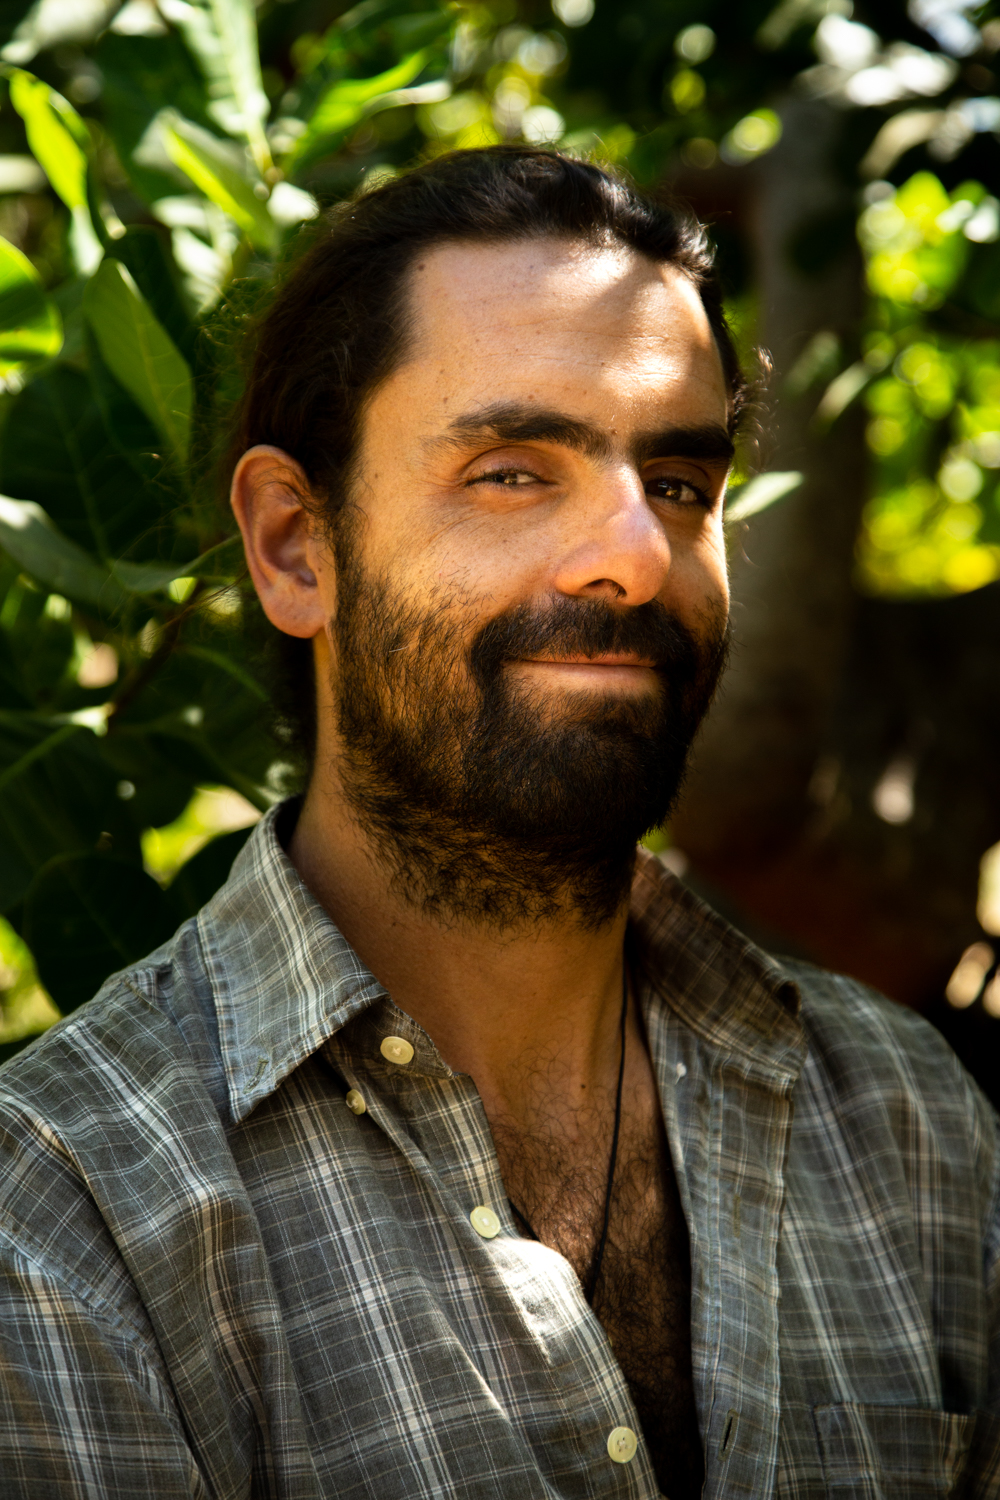 JOAQUÍN CARBONI (AR) | Coming from a bit closer to home, Joaquín is from Buenos Aires, Argentina and joined the Ceiba project on and off between September 2018 and January 2019. Before arriving at the shipyard, Joaquin had been traveling and working extensively in Central and South America and has been involved with many interesting ventures in the sailing and diving world as well as elsewhere, before bringing his wisdom to the yard and helping in particular with the evolution of the food forest and tree-planting projects. He is well-known for his particular love of music infused with rice and beans to accompany the fun that are the traditional daily breakfasts of gallo pinto.   Joaquín viene de Buenos Aires, Argentina y se unió al proyecto de Ceiba de manera ininterrumpida entre septiembre de 2018 y enero de 2019. Antes de llegar al astillero, Joaquín había estado viajando y trabajando extensamente en América Central y del Sur y participó en muchas empresas interesantes en el mundo de la vela y el buceo, así como en otros lugares, antes de llevar su conocimiento al astillero y ayudar en particular con la evolución del bosque de alimentos y los proyectos de plantación de árboles. Es bien conocido por su amor particular por la música con arroz y frijoles para acompañar la diversión que son los tradicionales desayunos de gallo pinto.